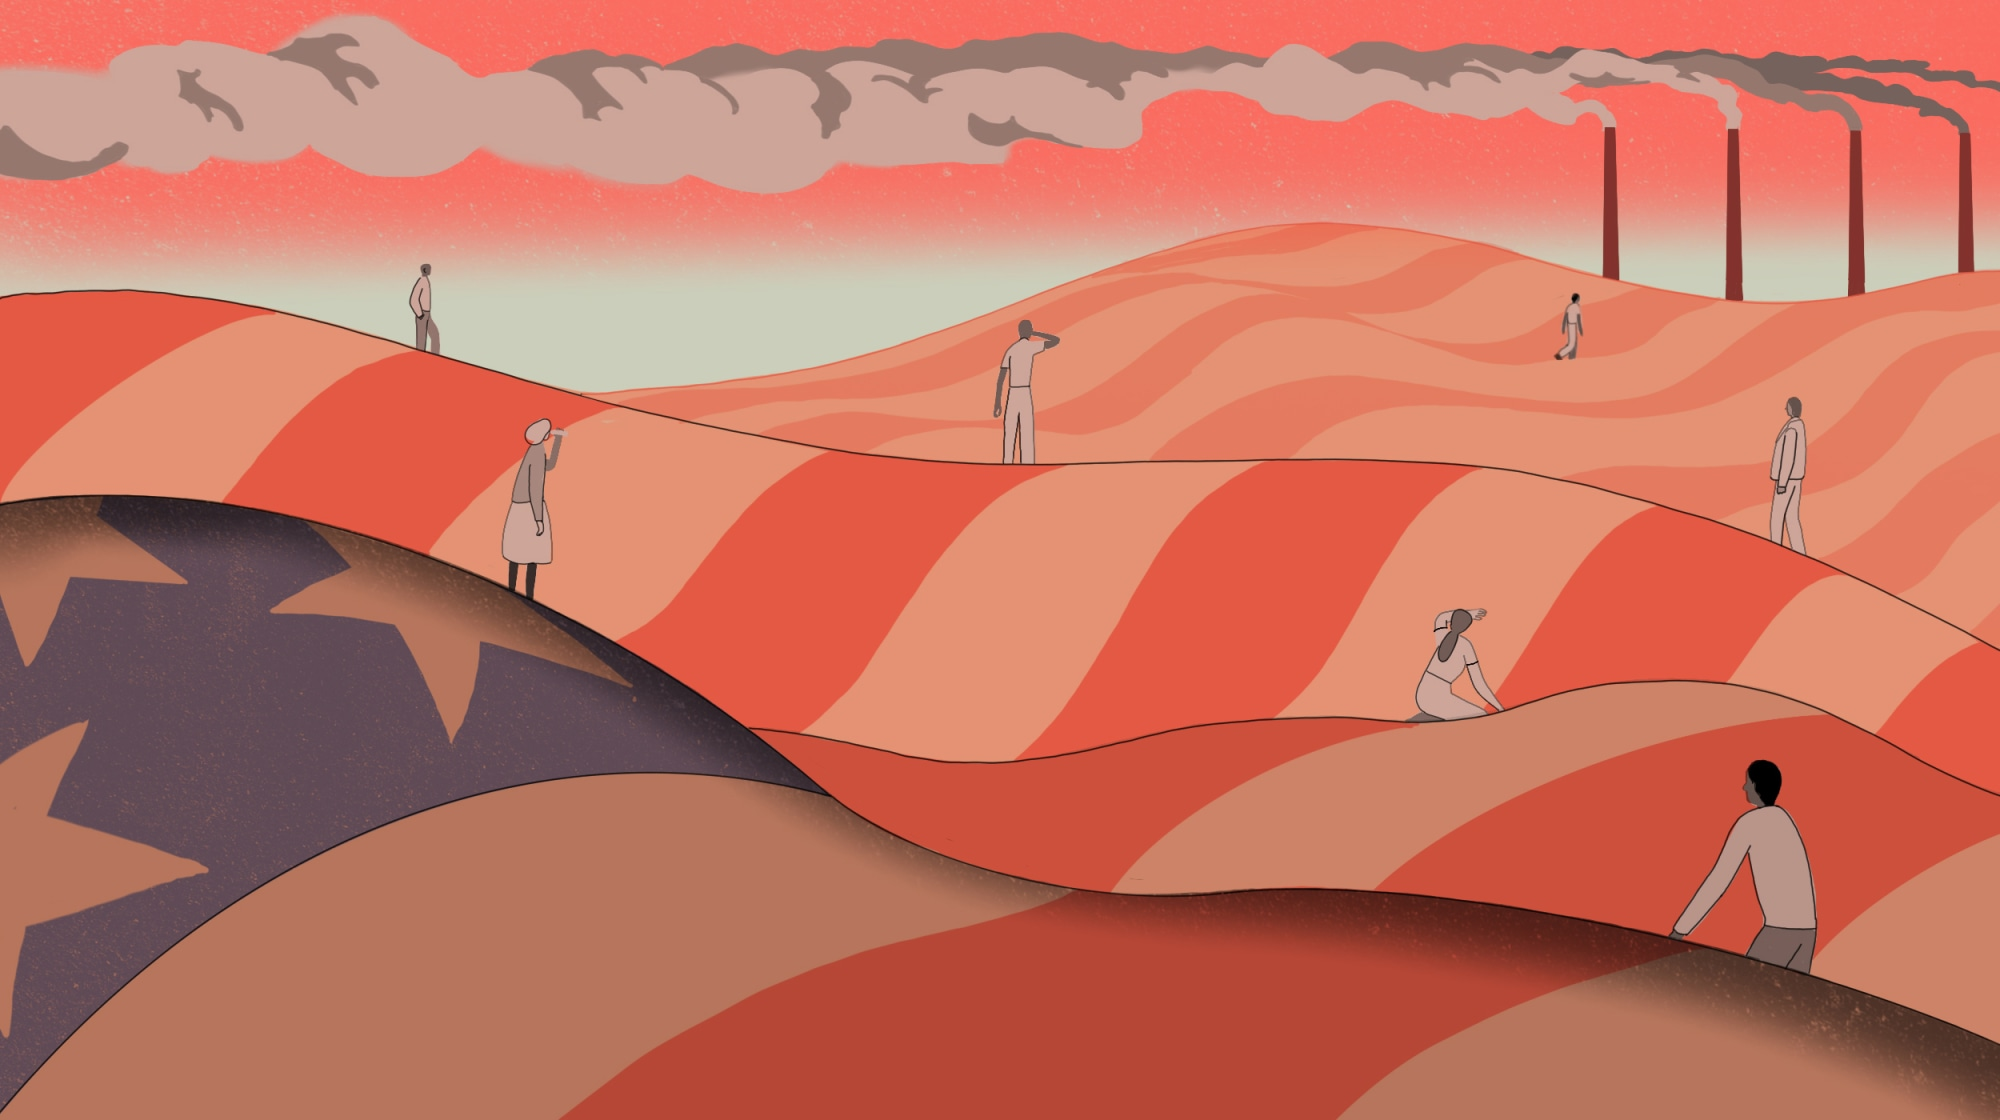 Illustration of overheated people standing on hills made of the American flag, smoke stacks billow in the distance.